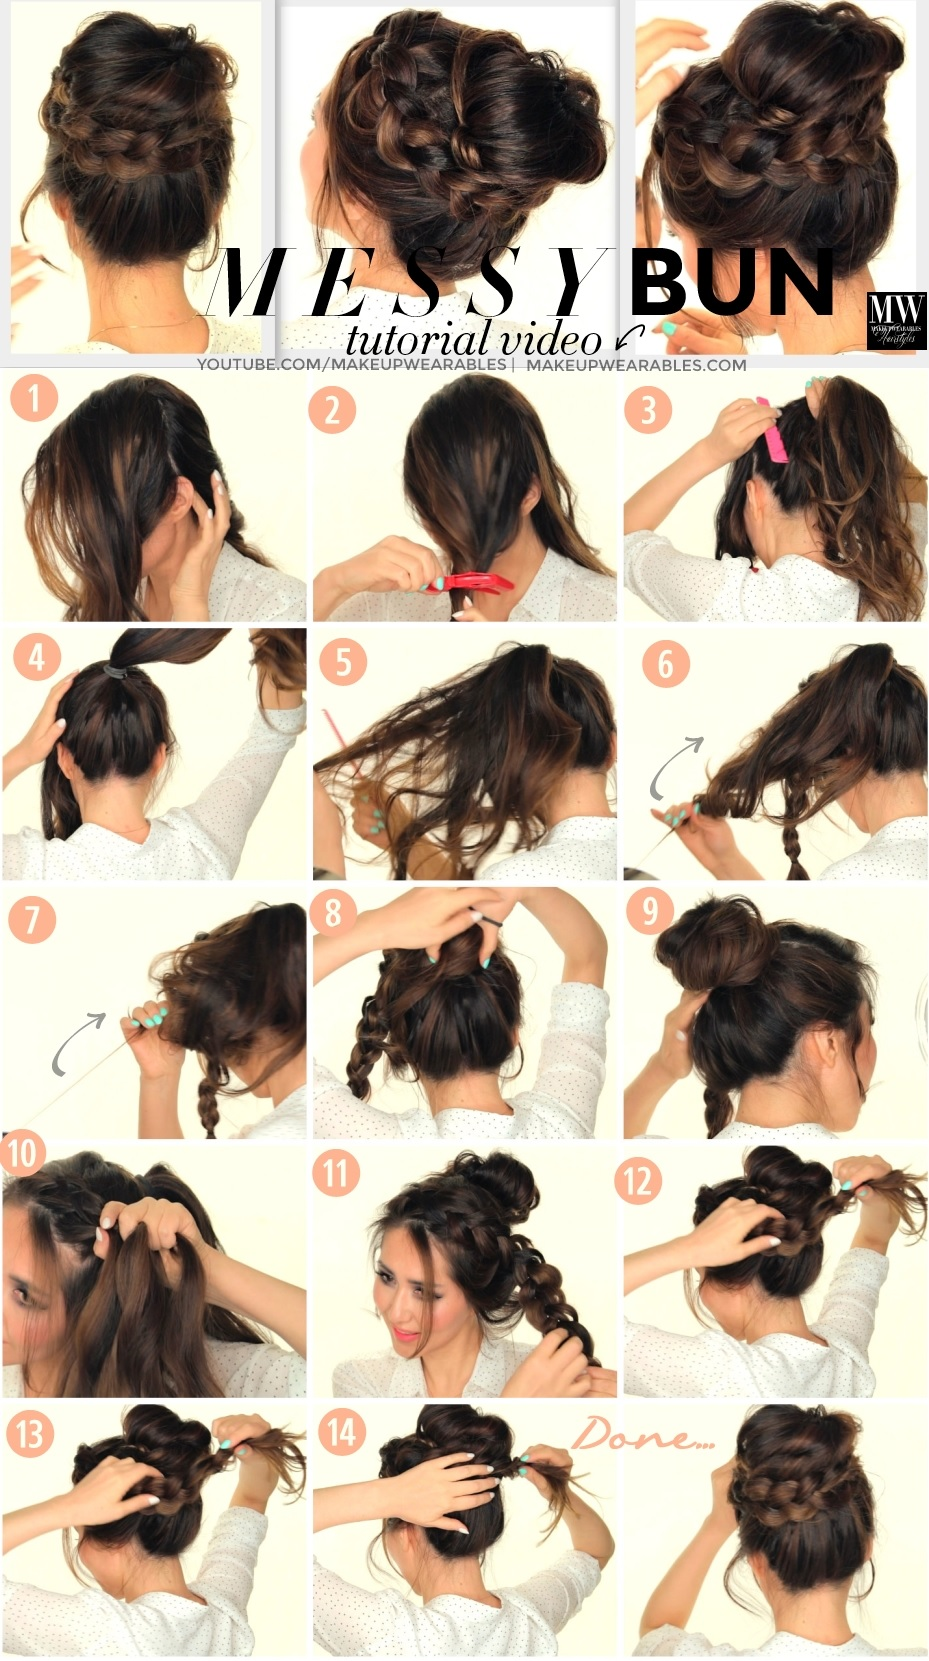 10 Beautiful Chignons To Do At Home Updo Hairstyles